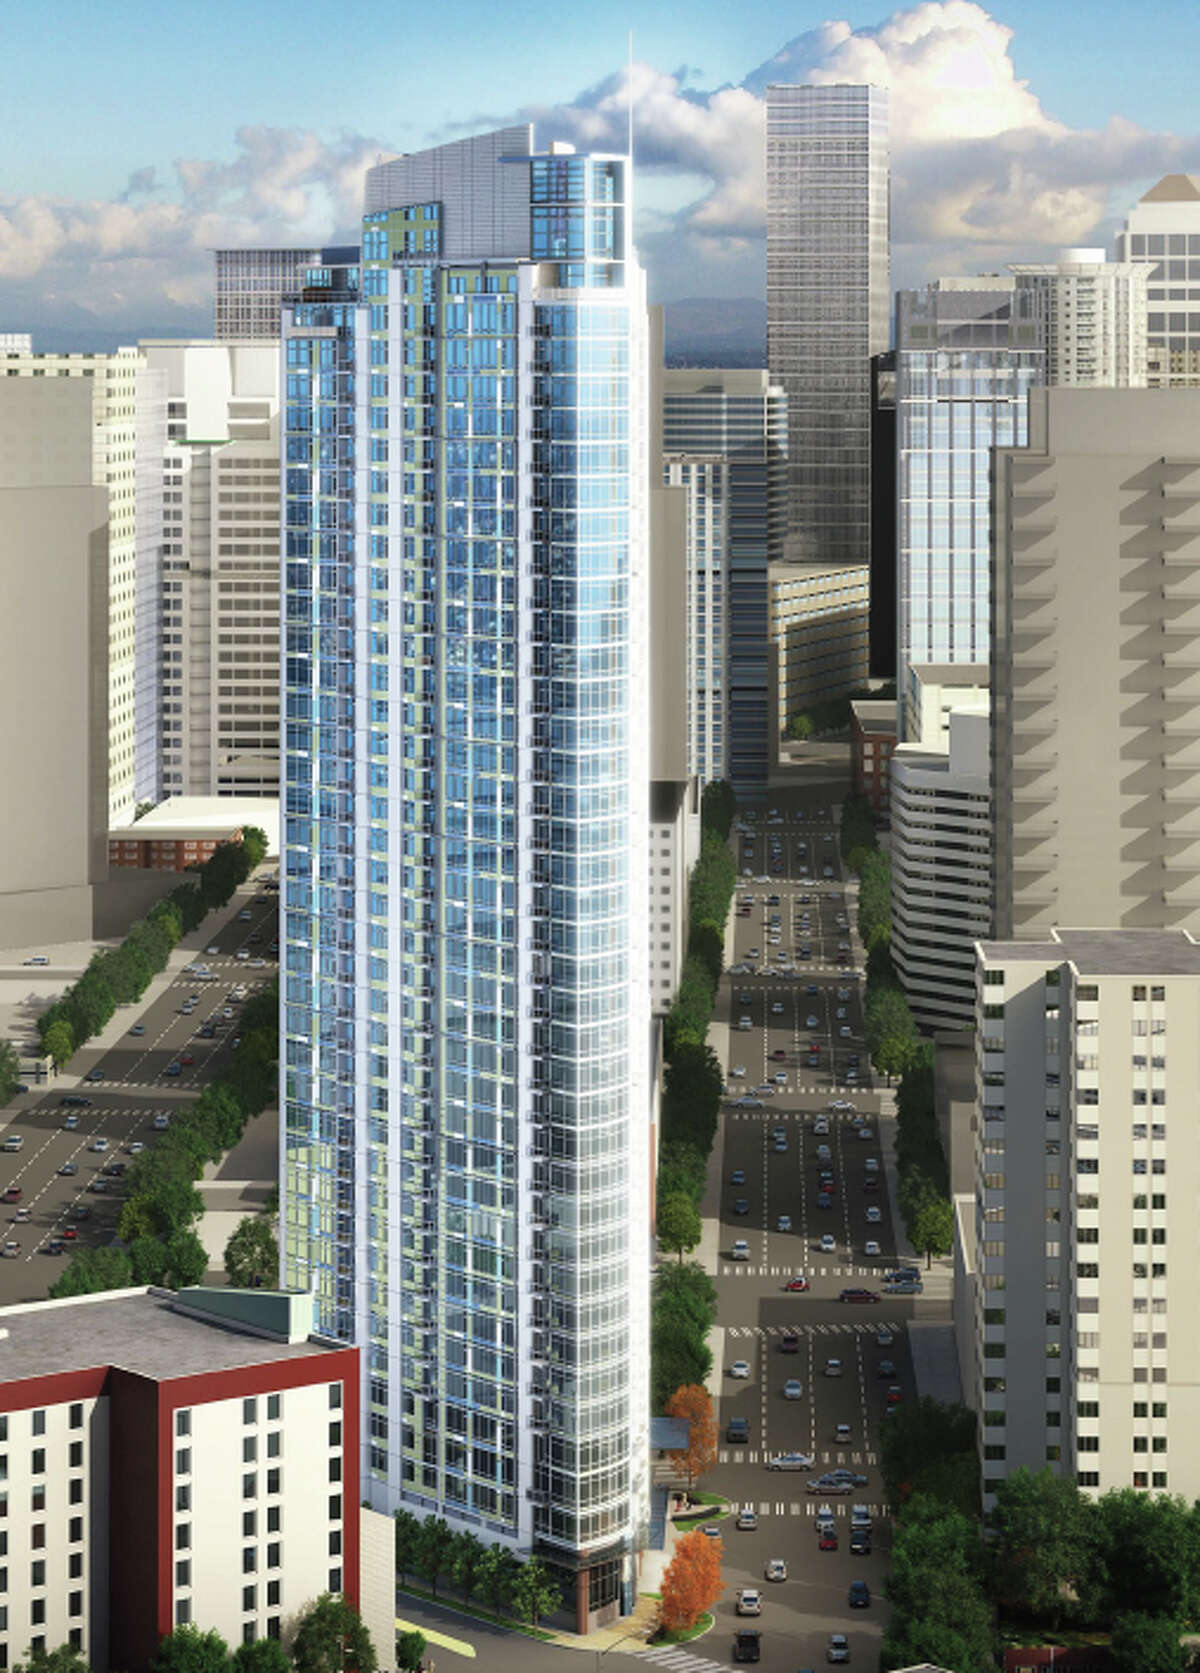 The proposed 39-story 600 Wall St. tower is shown in this artist's rendering.